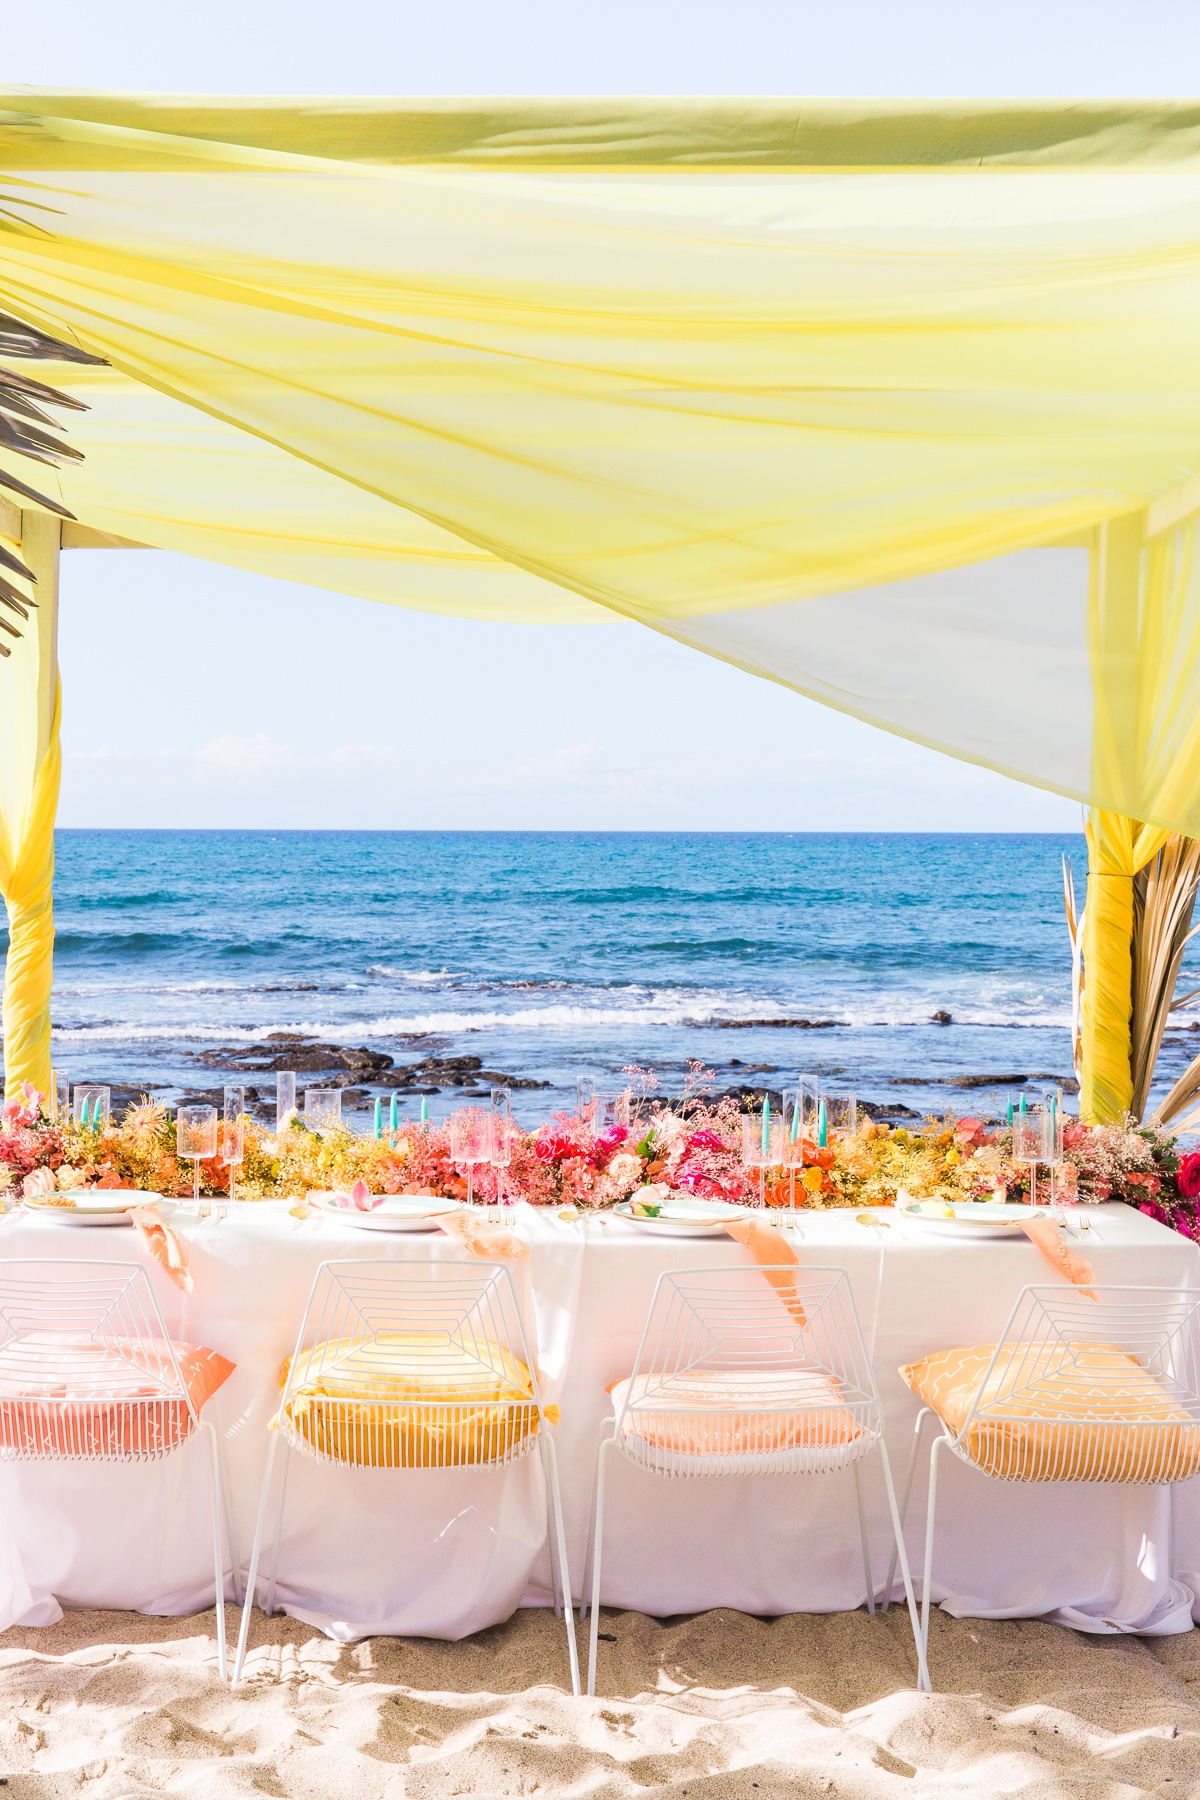 Rainbow wedding reception at the beach